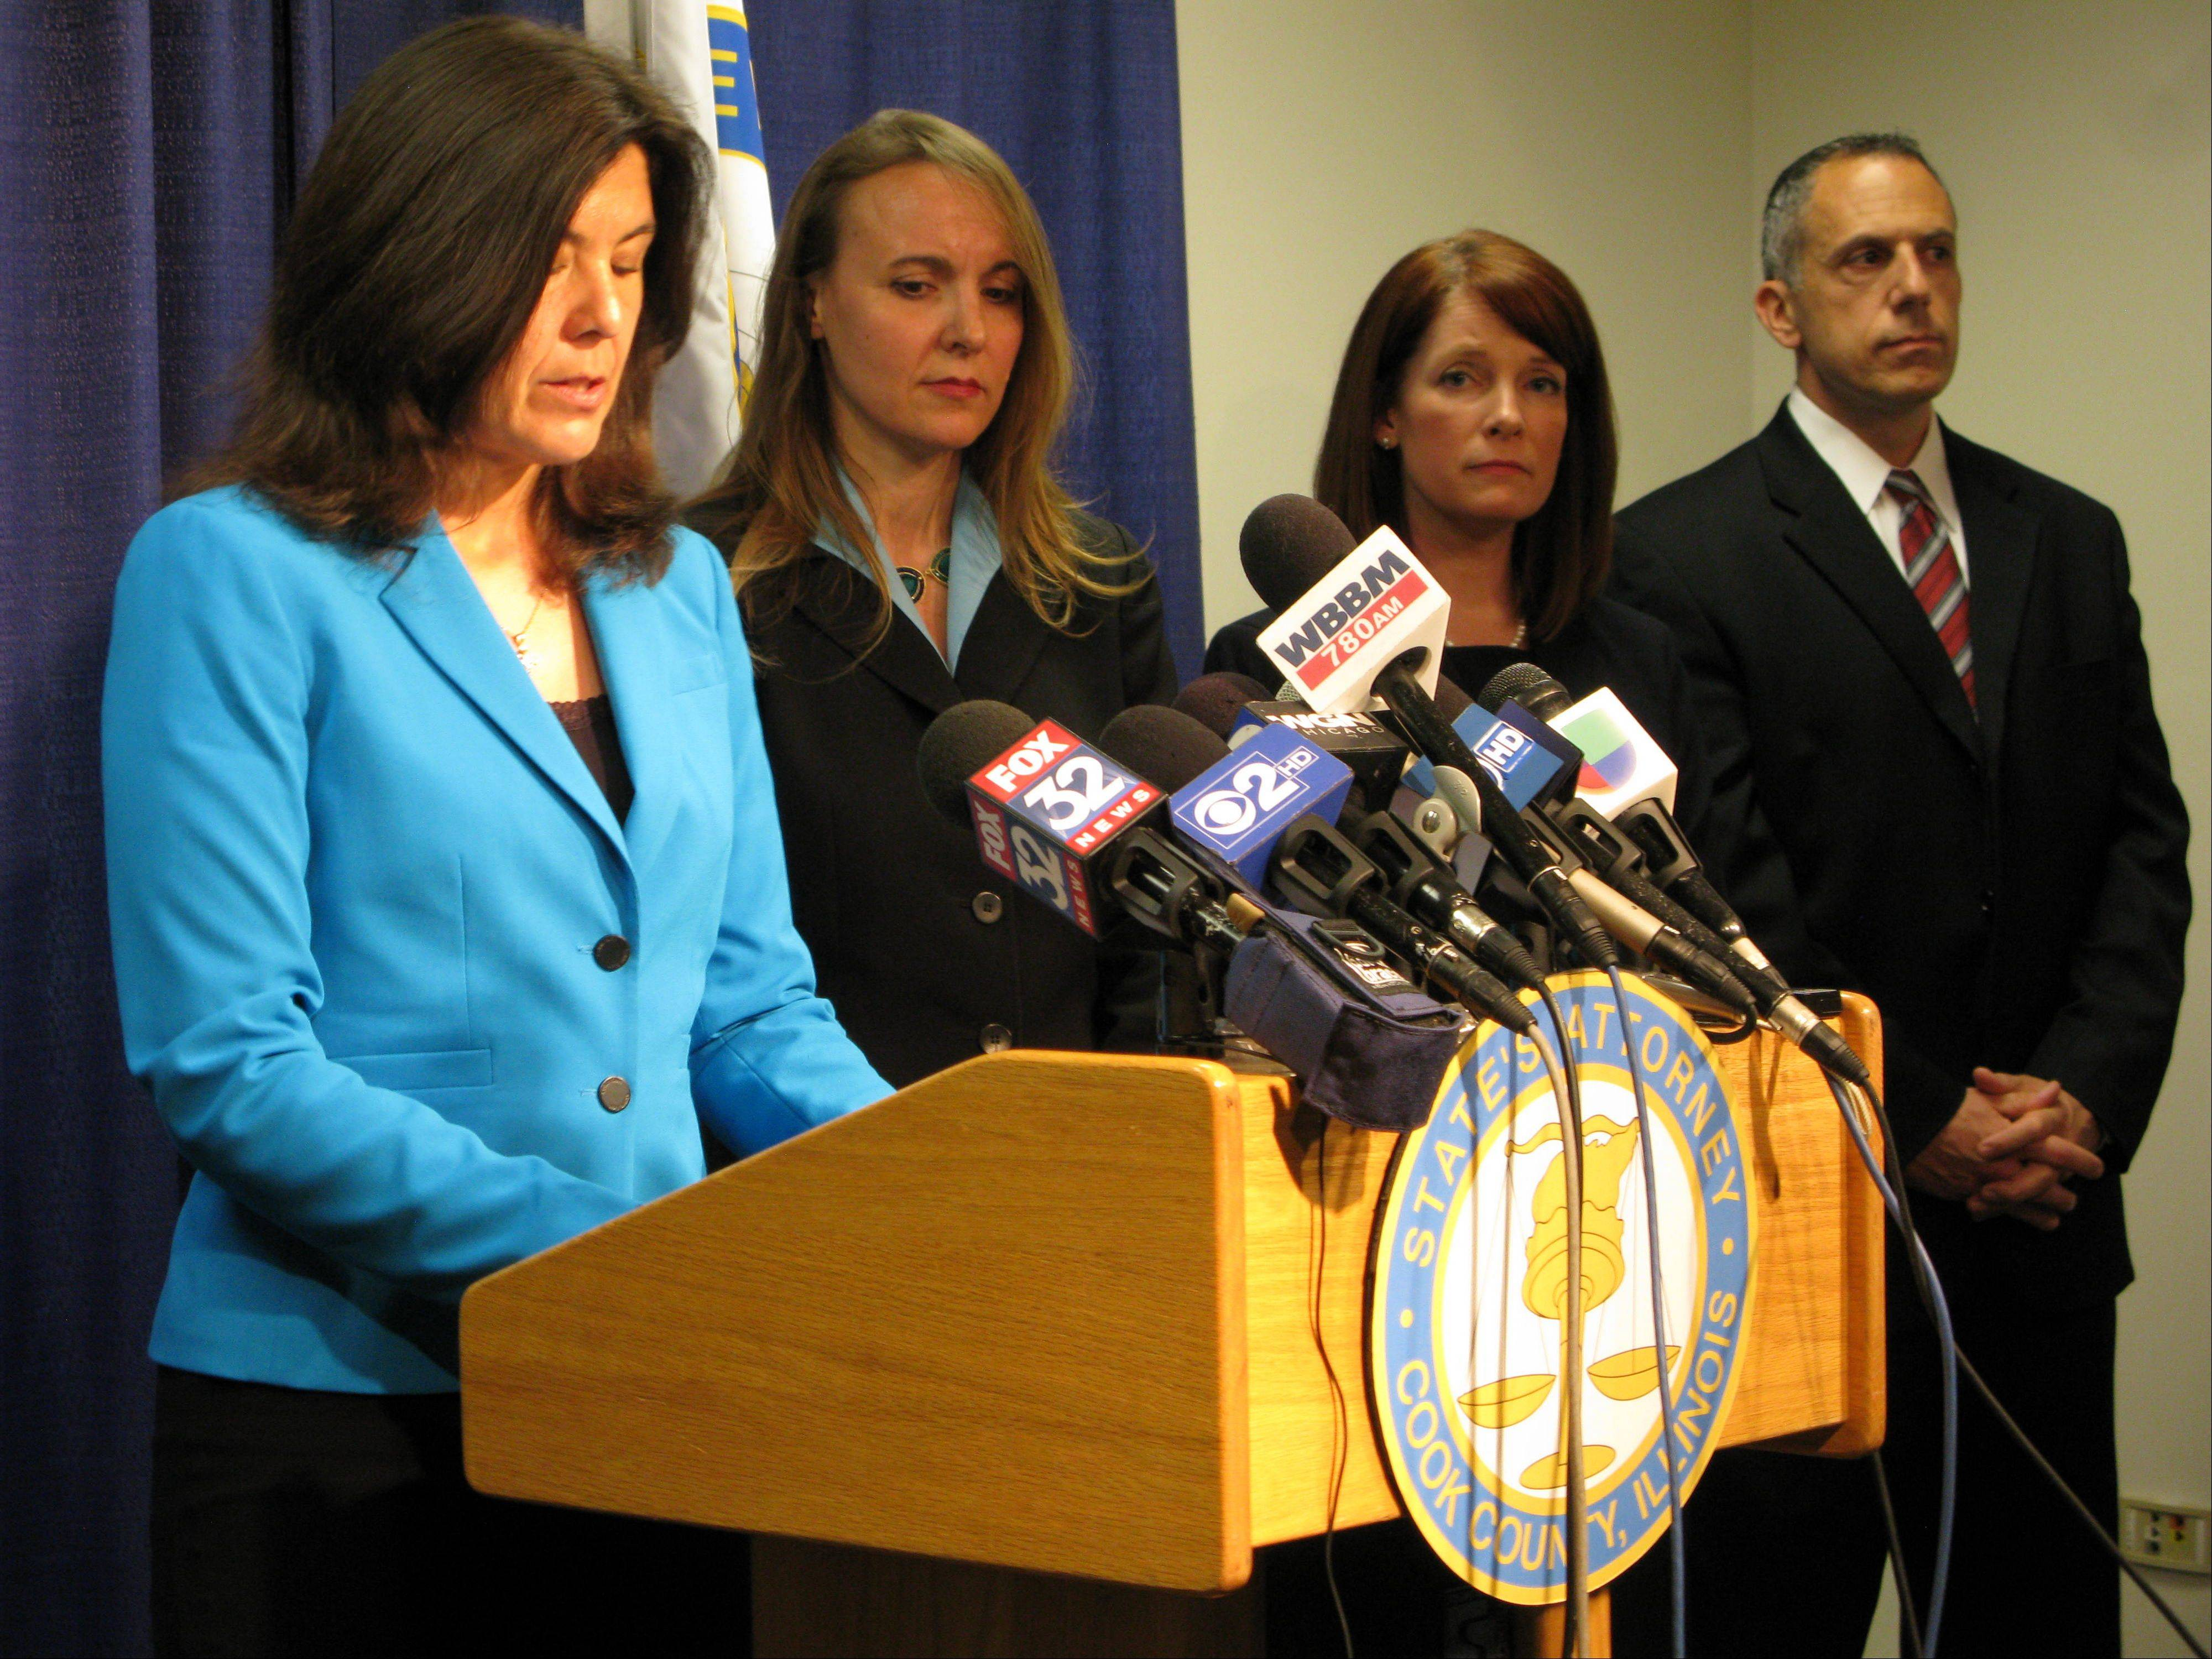 Cook County State's Attorney Anita Alvarez, left, announces multiple misdemeanor charges Wednesday against former Maine West High School soccer coach Michael Divincenzo related to hazing, battery and failure to report abuse, after her office's five-month-long investigation into allegations of hazing at the Des Plaines school.